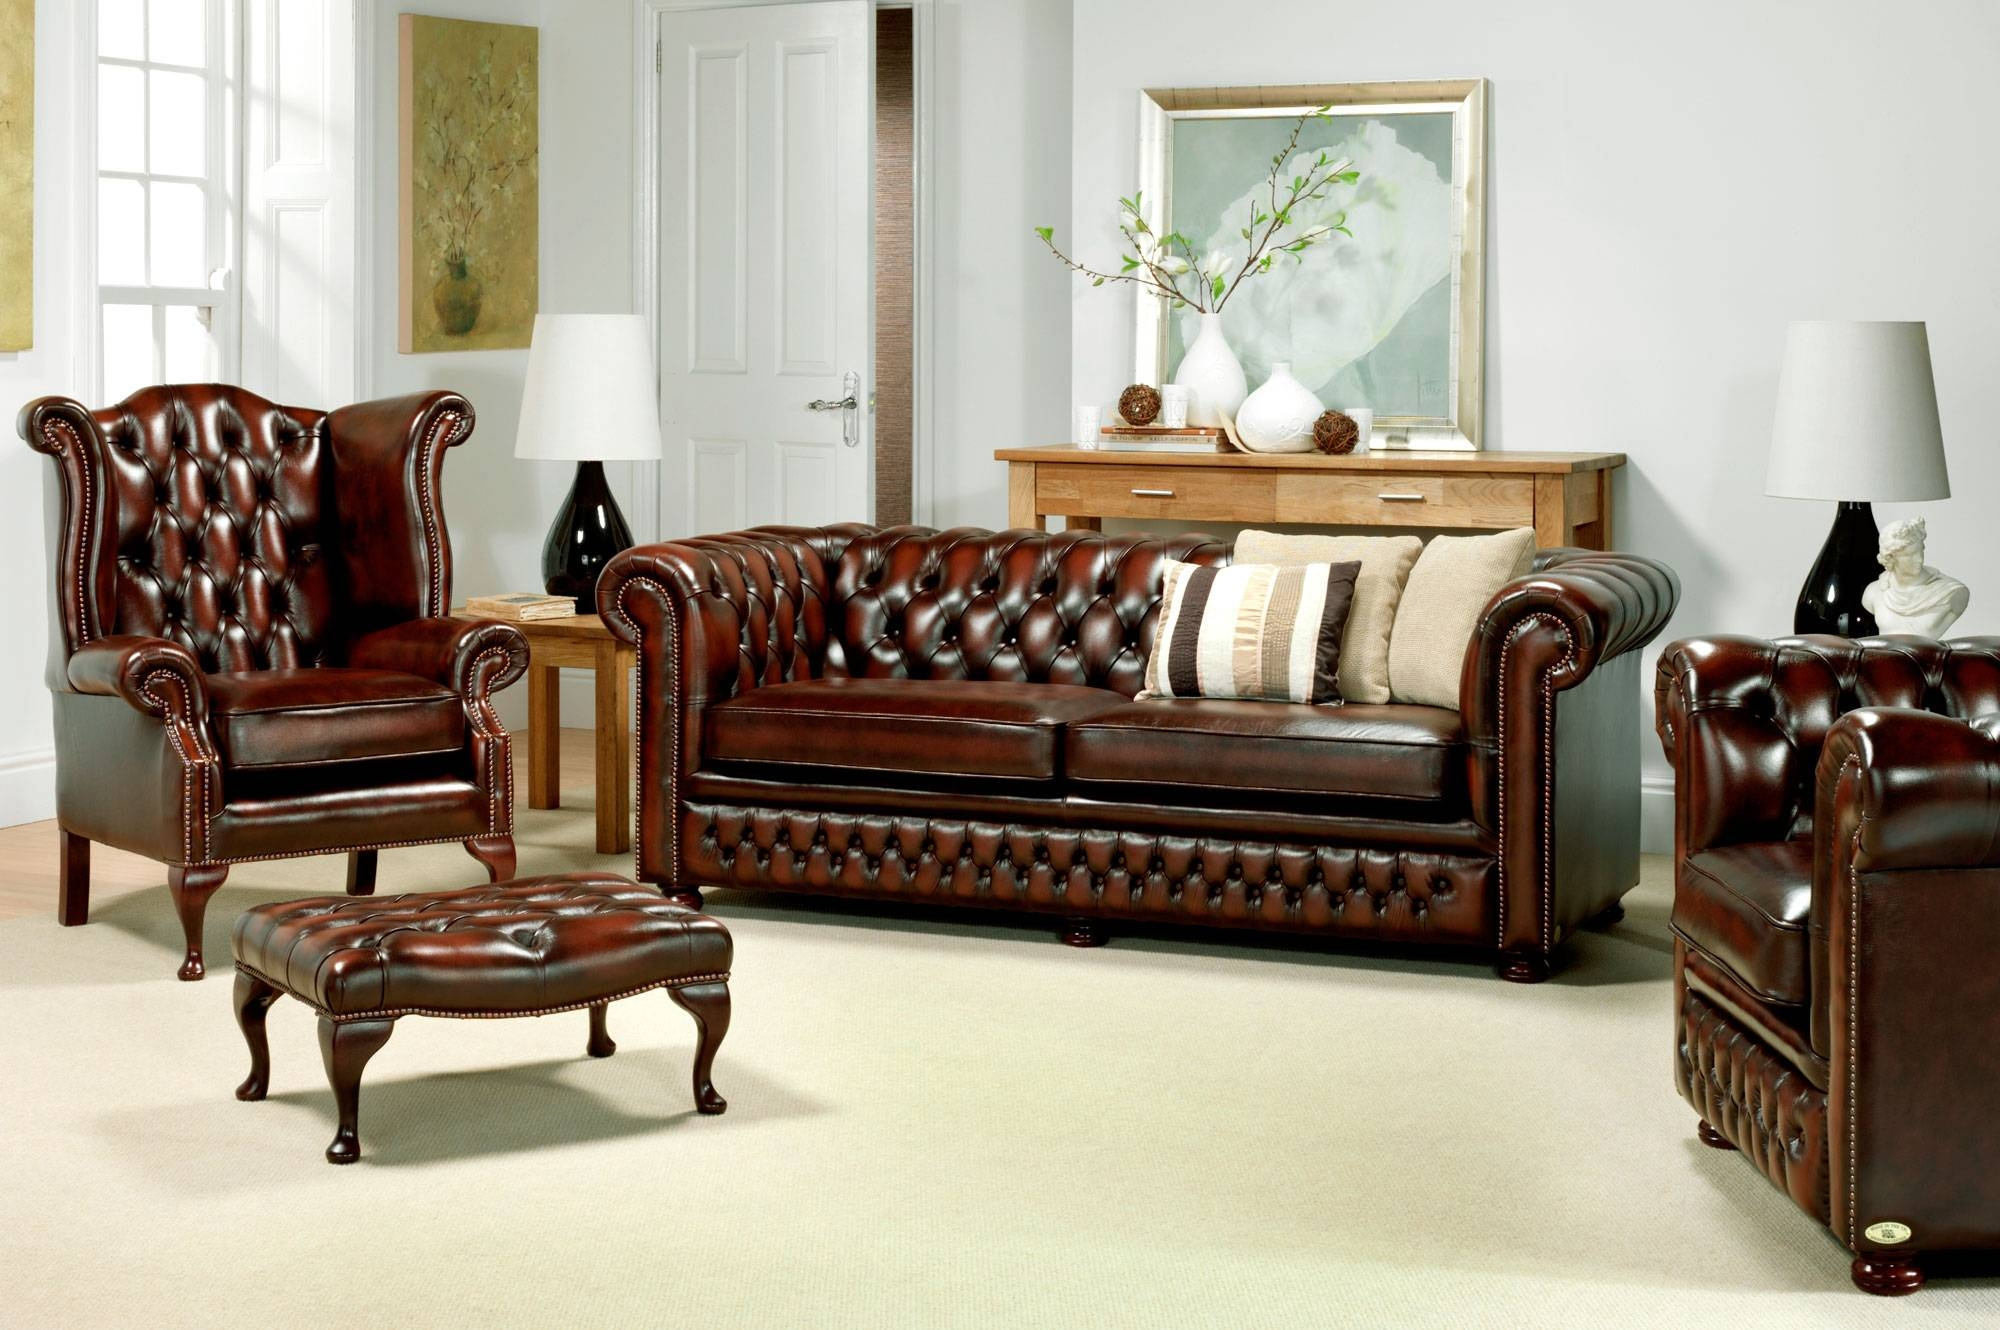 Leather Chesterfield Sofa Ideas For Home New Lighting within Small Chesterfield Sofas (Image 12 of 30)